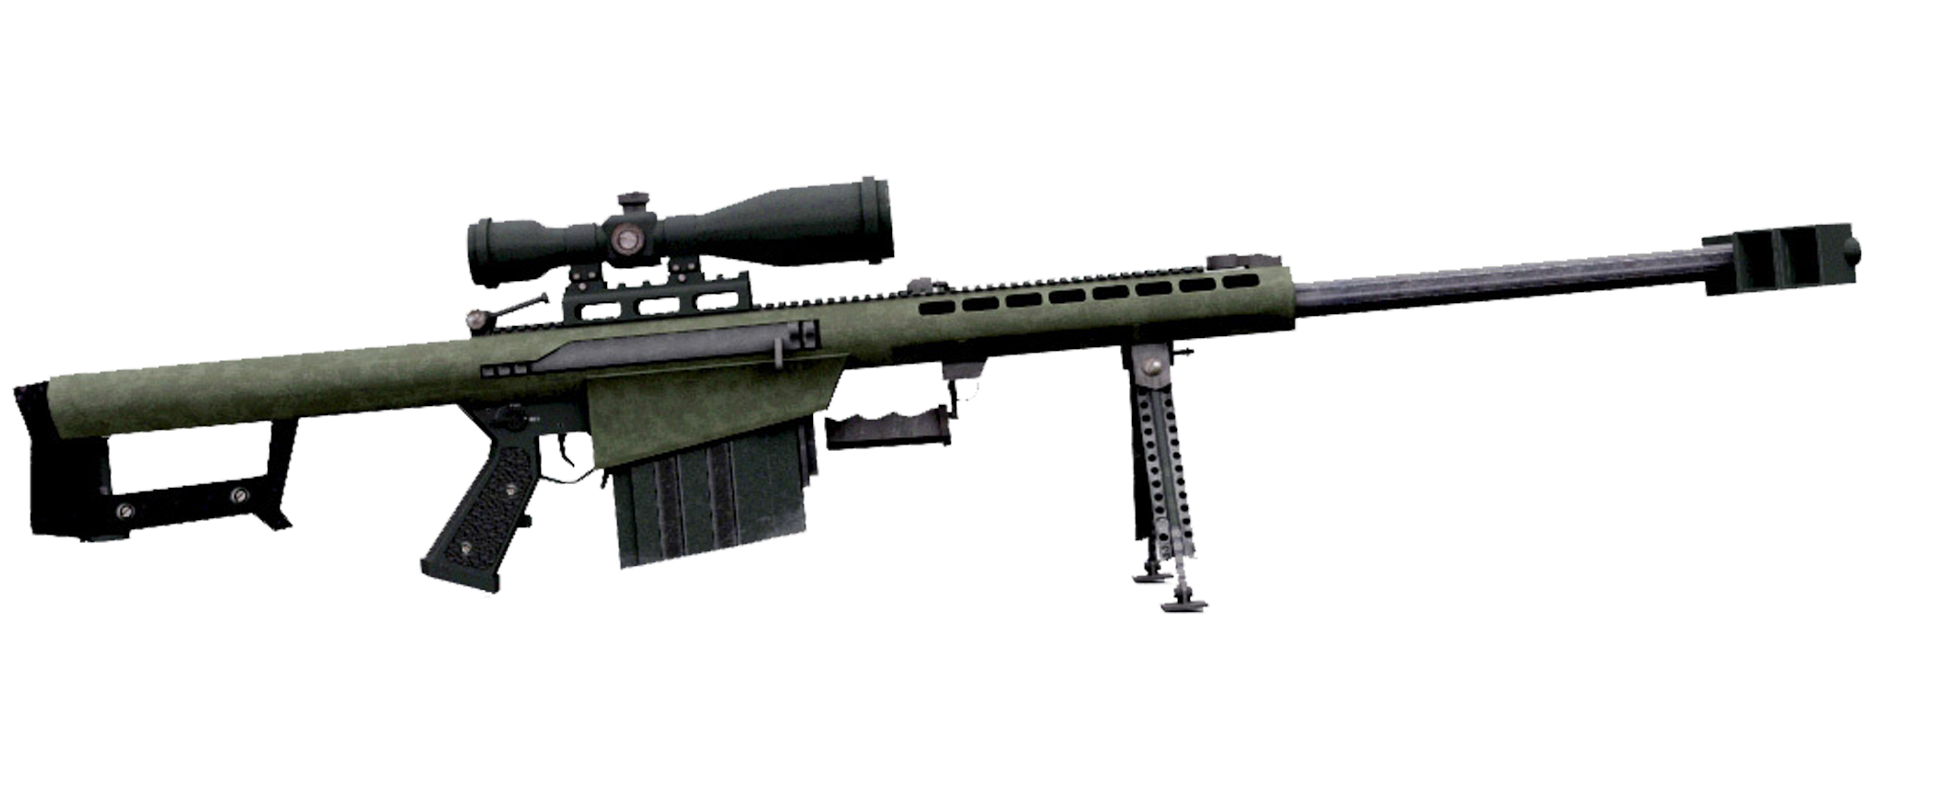 Transparent rifle 50 cal sniper. Barrett m assault bmg